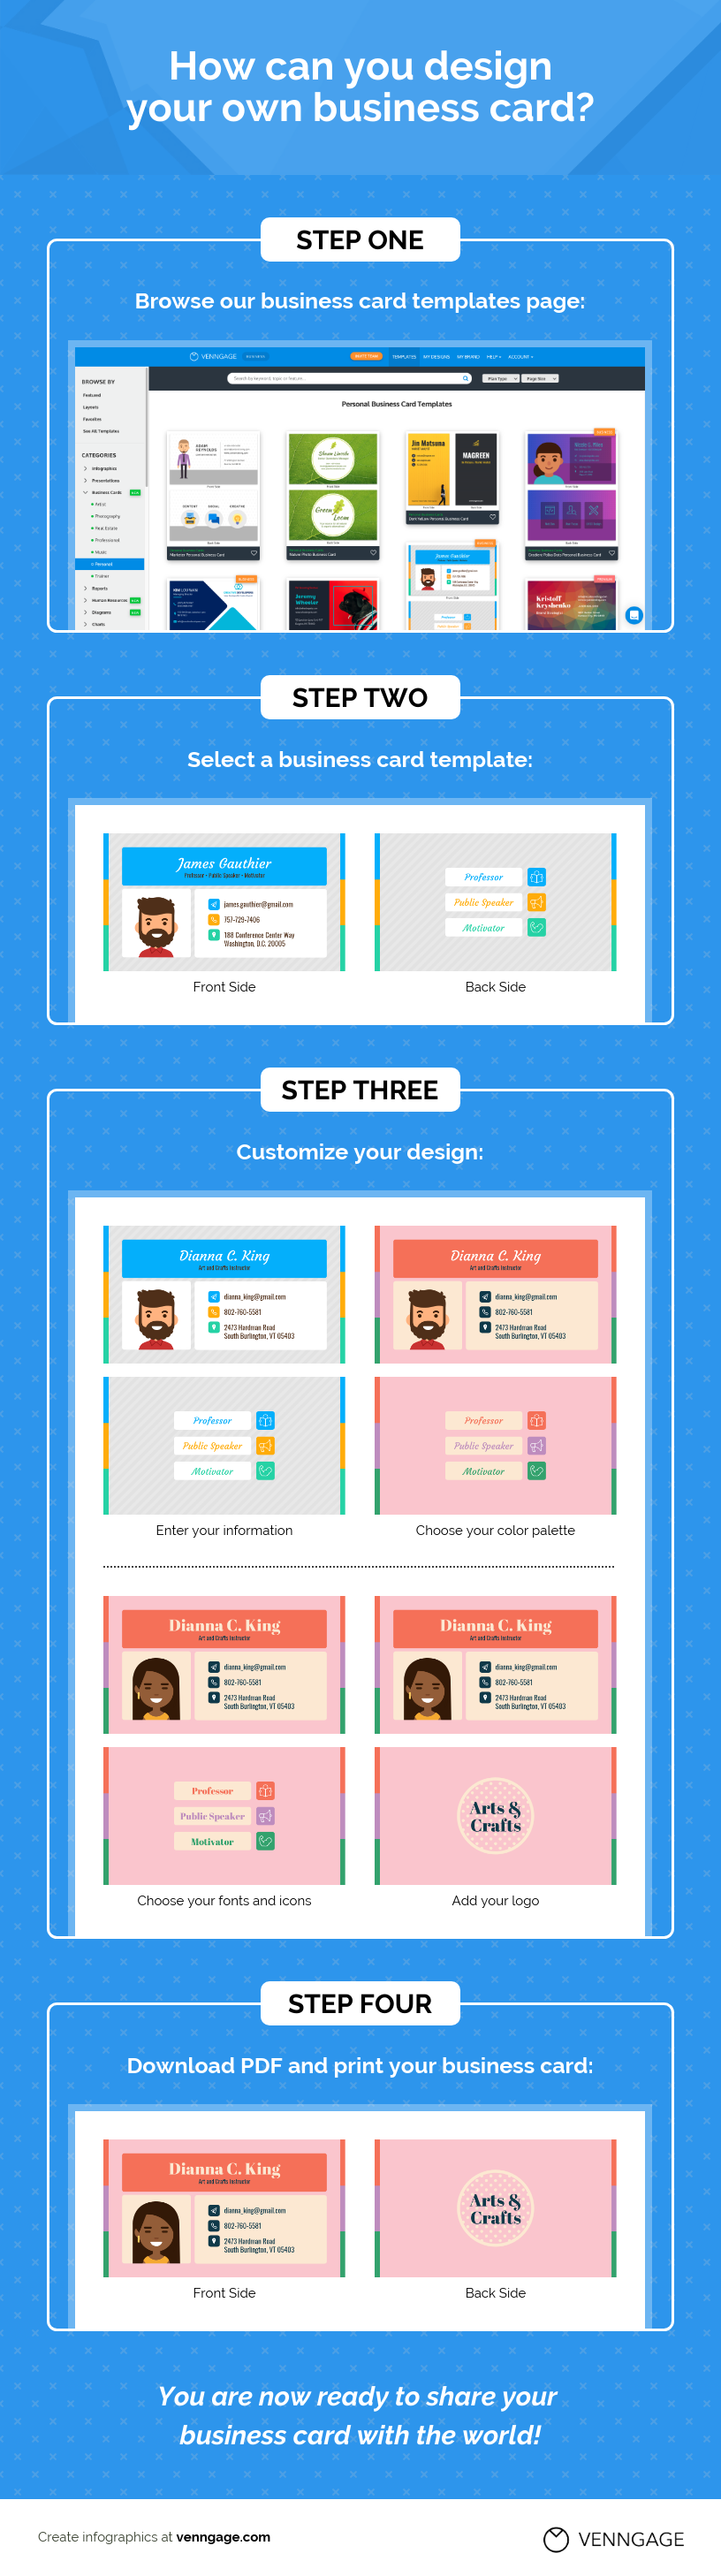 Designing_Business_Cards_Infographic